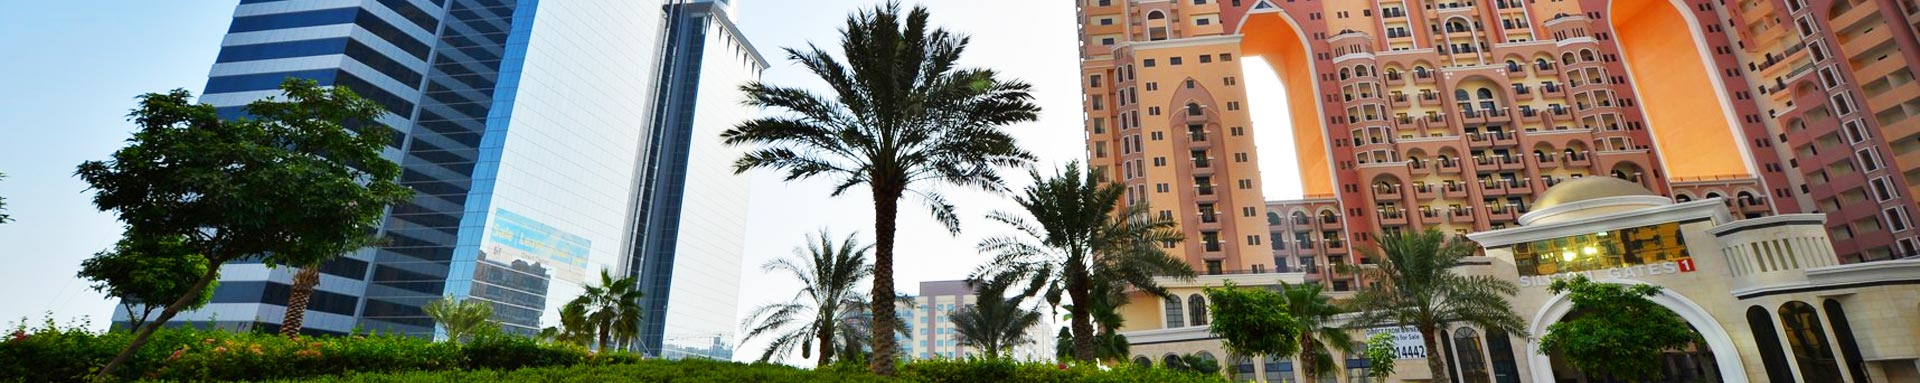 Dubai Silicon Oasis Apartment for Sale and Rent in Dubai